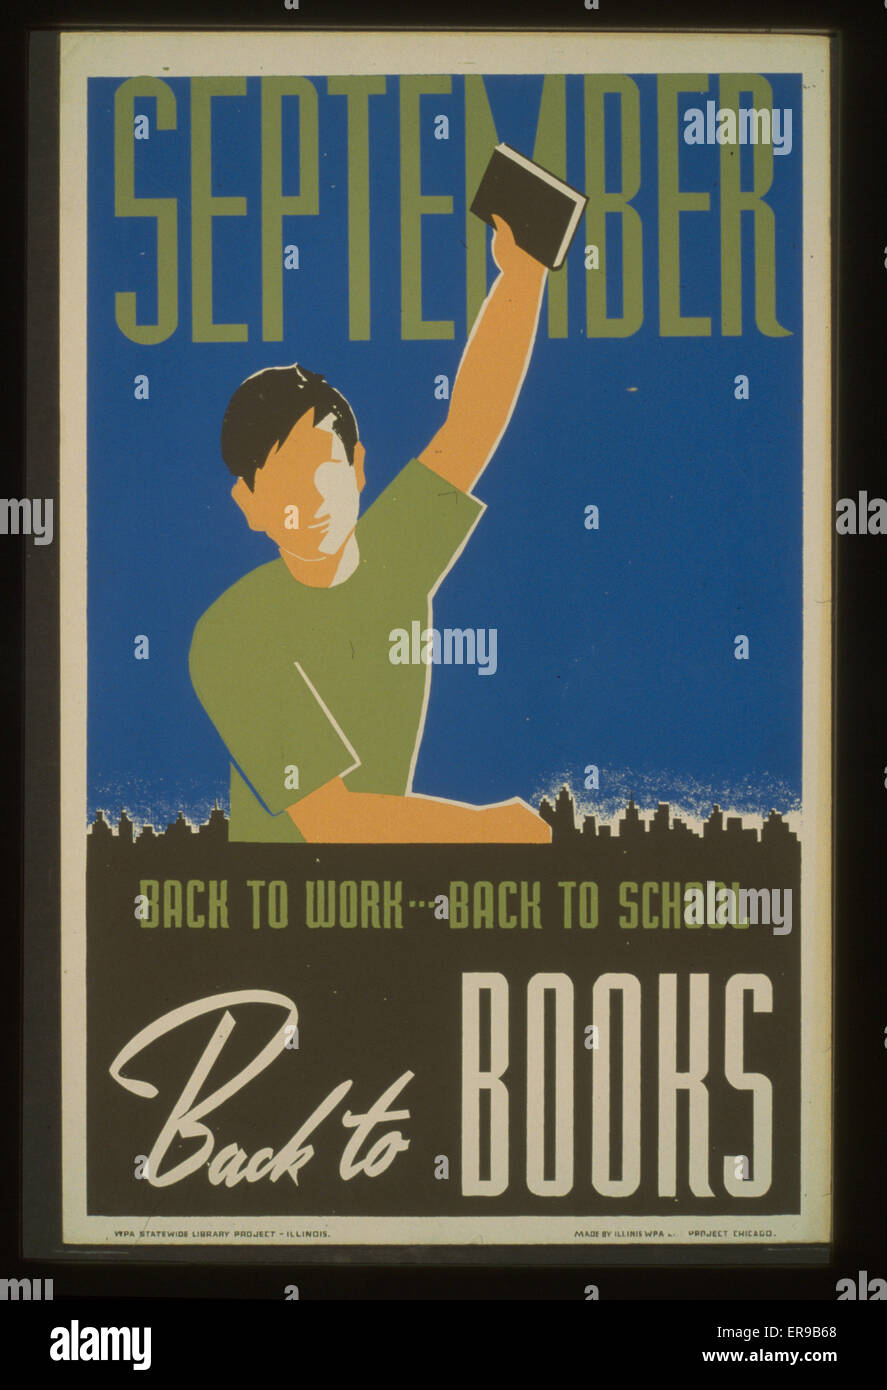 back to work back to school back to books poster for wpa statewide library project showing a boy holding a book in his raised hand